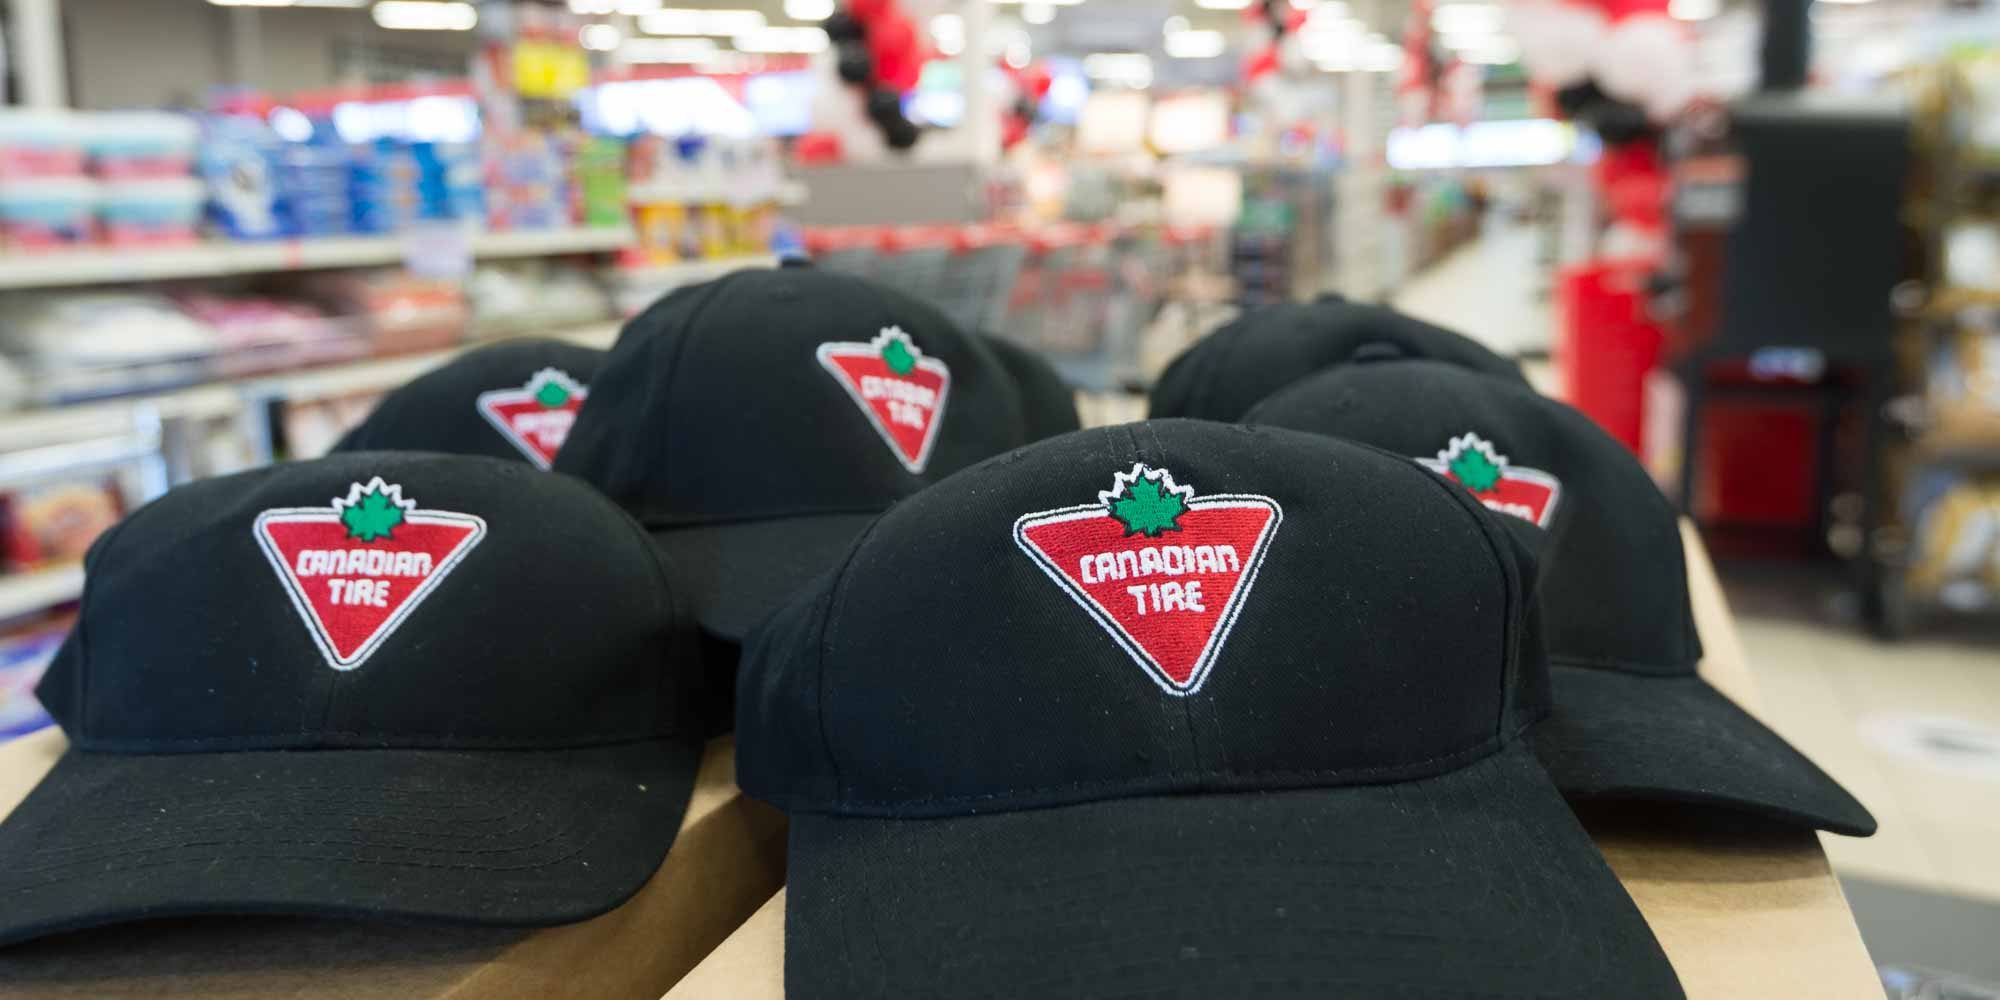 Le nouveau Canadian Tire de Sainte-Agathe officiellement